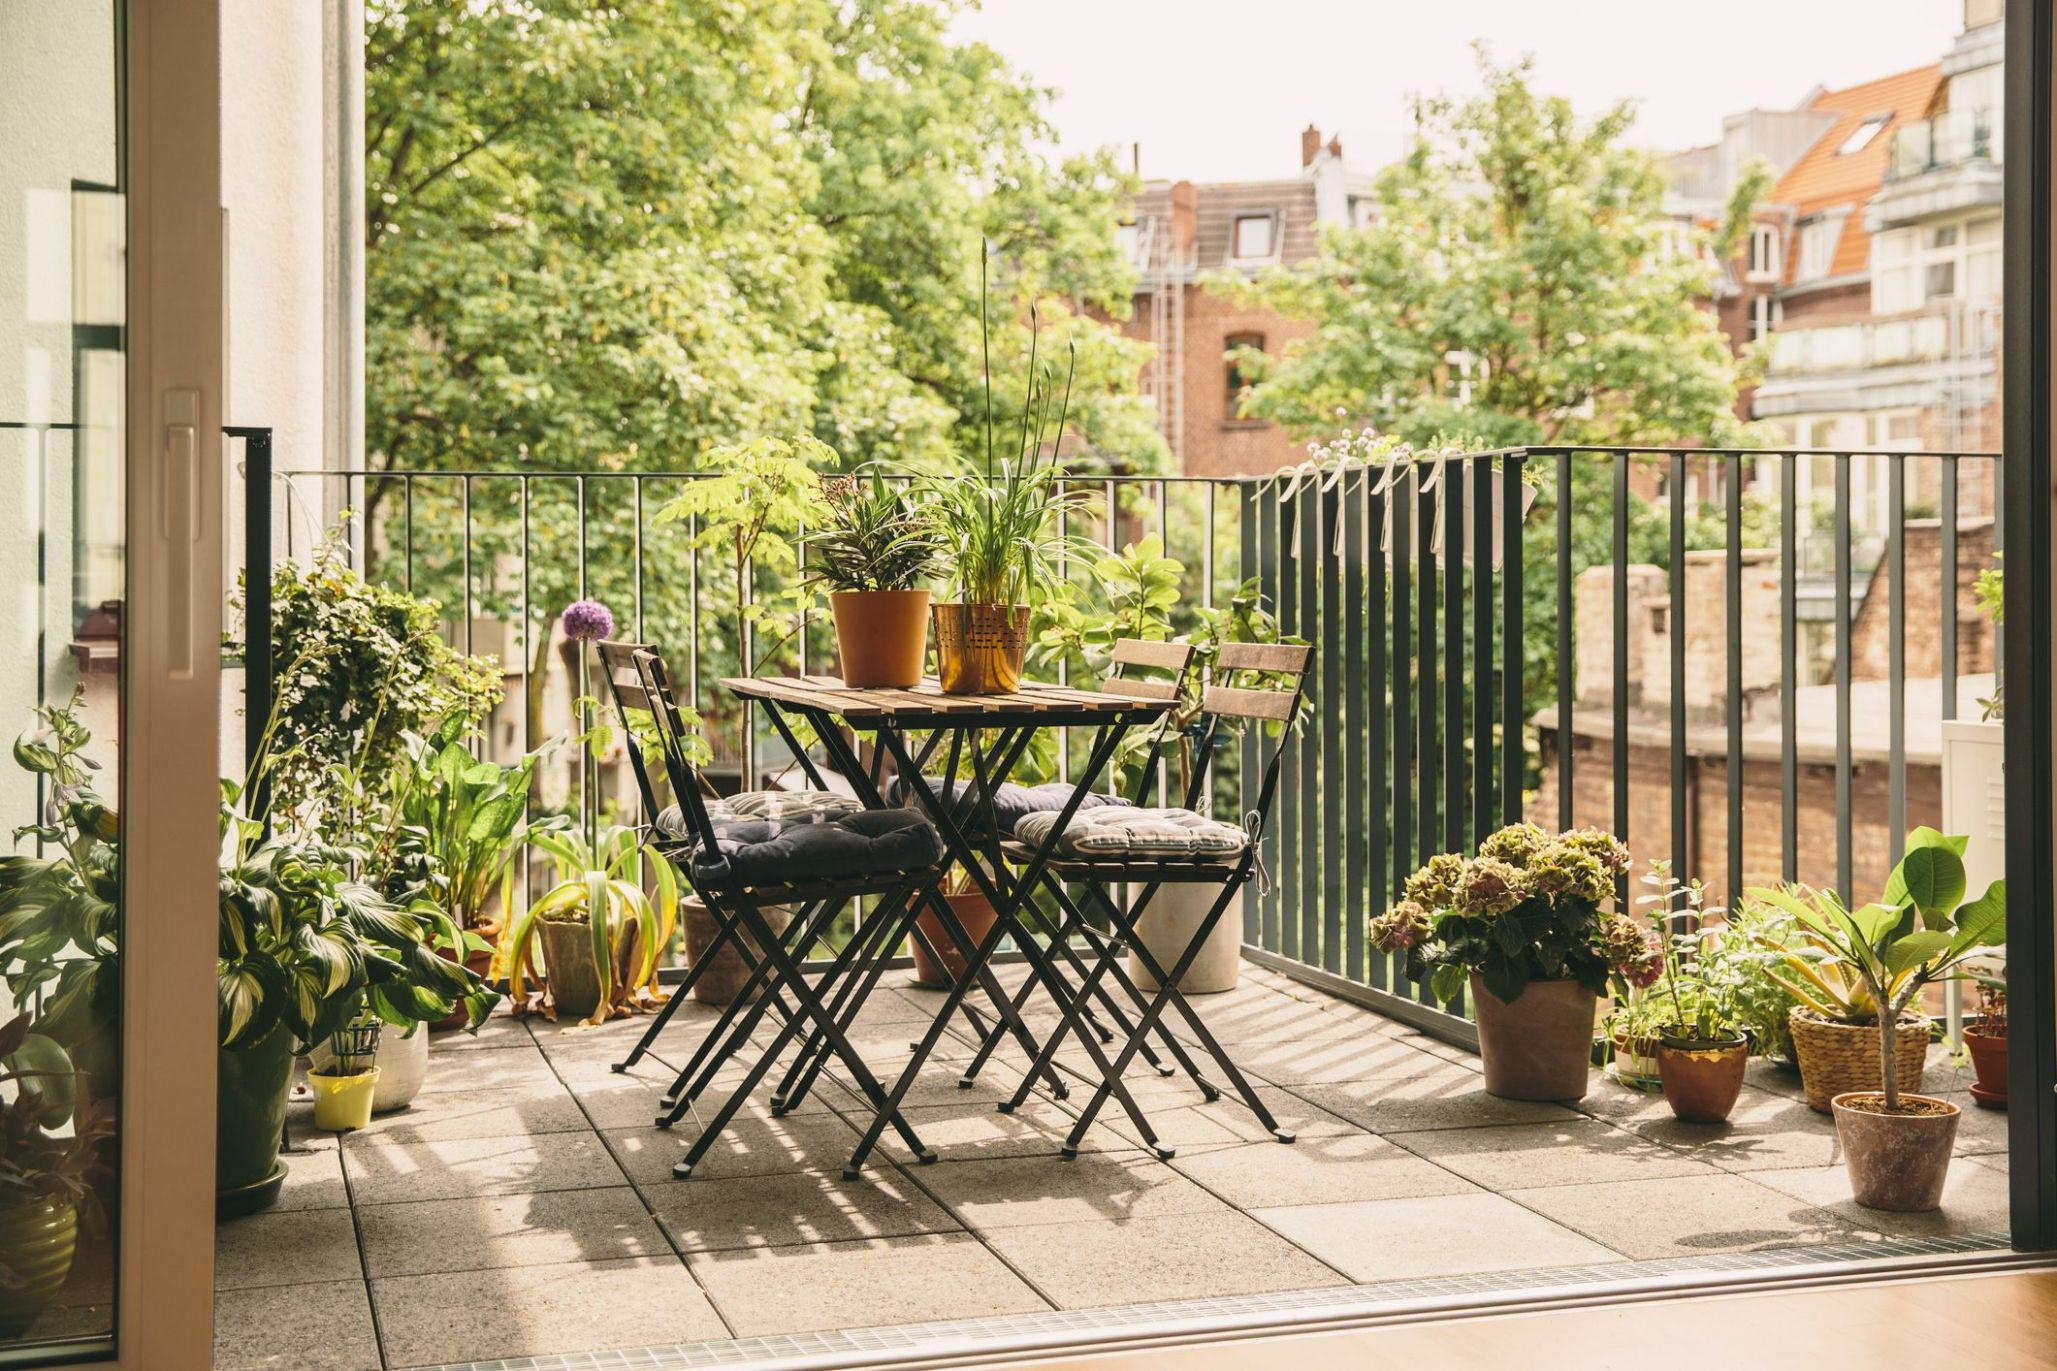 Balcony Garden Ideas - Plants, Furniture and Affordable Updates - balcony ideas uk